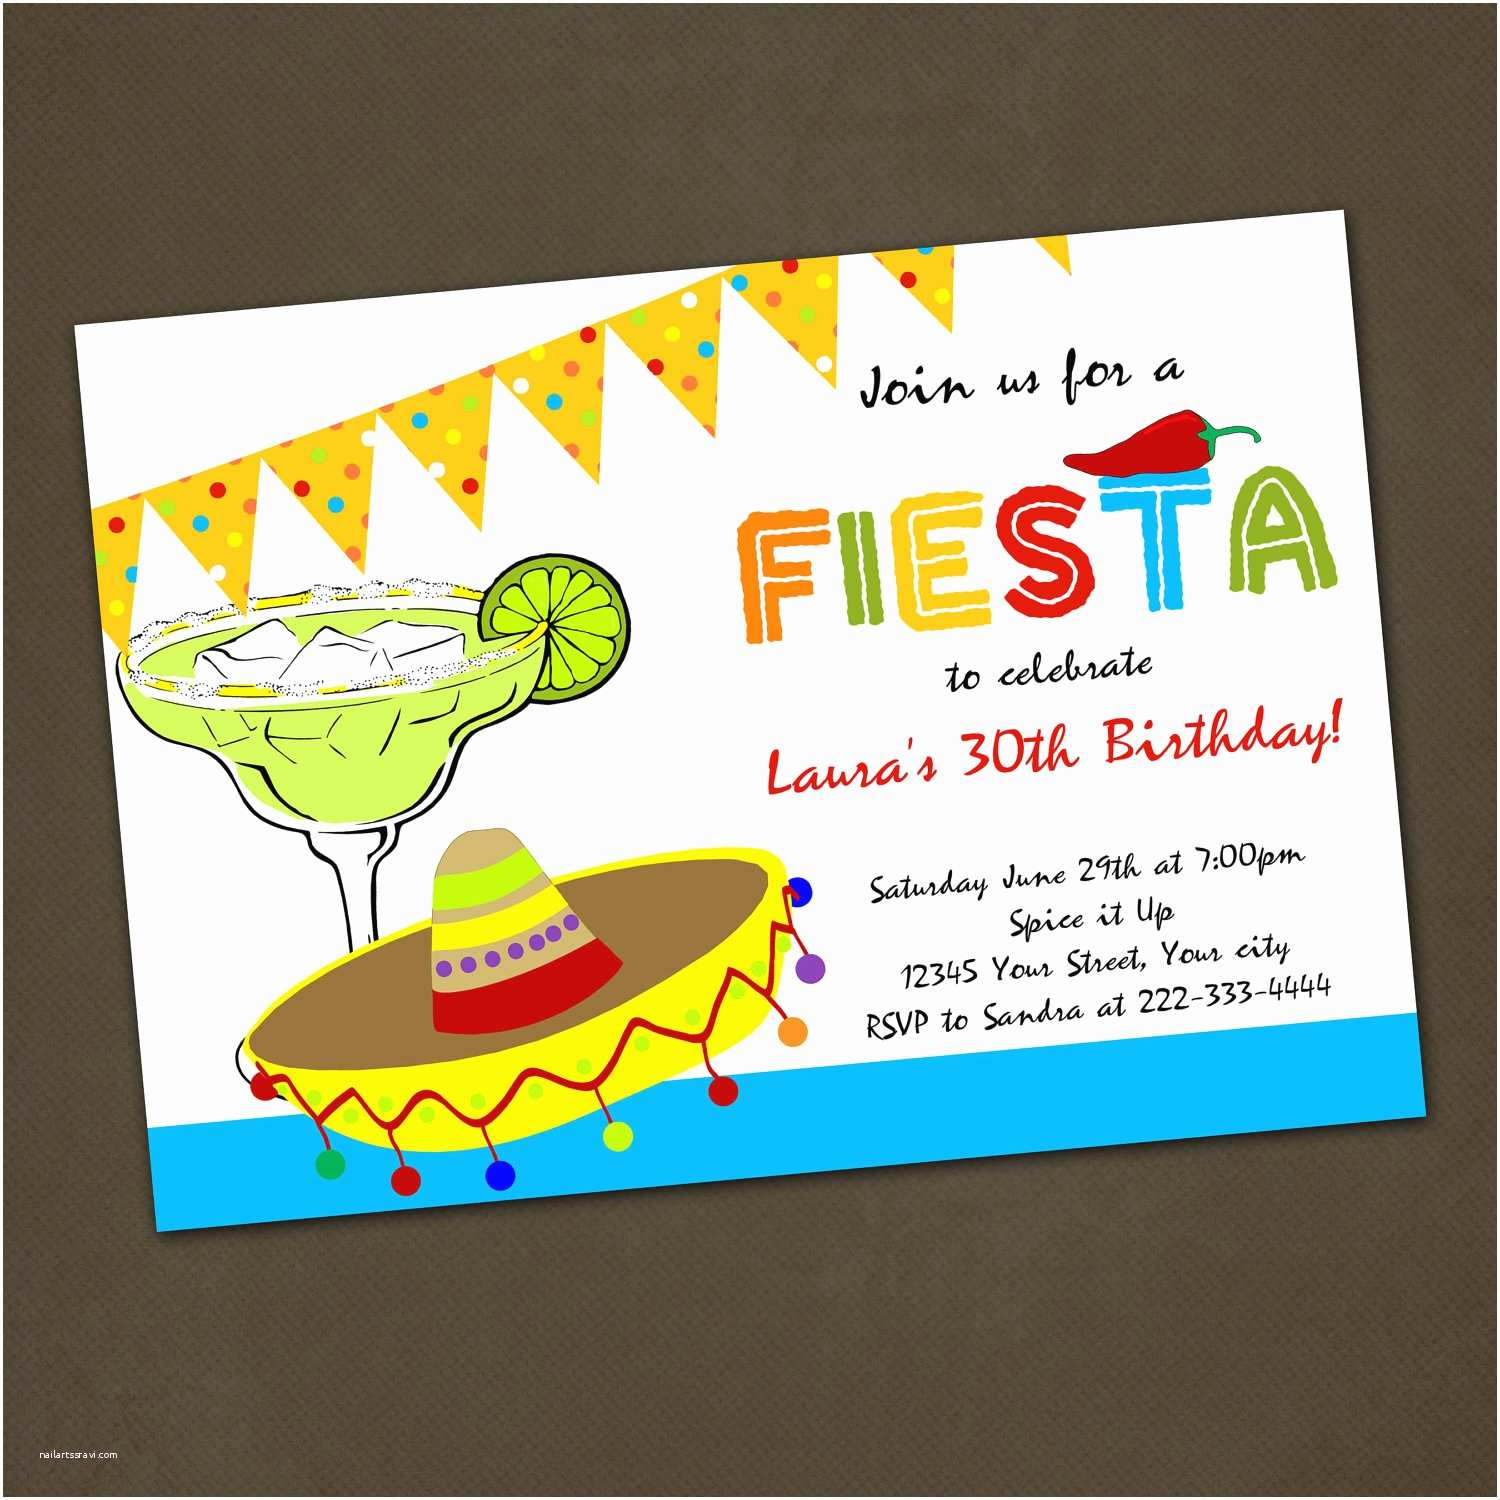 Fiesta Birthday Invitations Mexican Fiesta Birthday Party Invitations You by